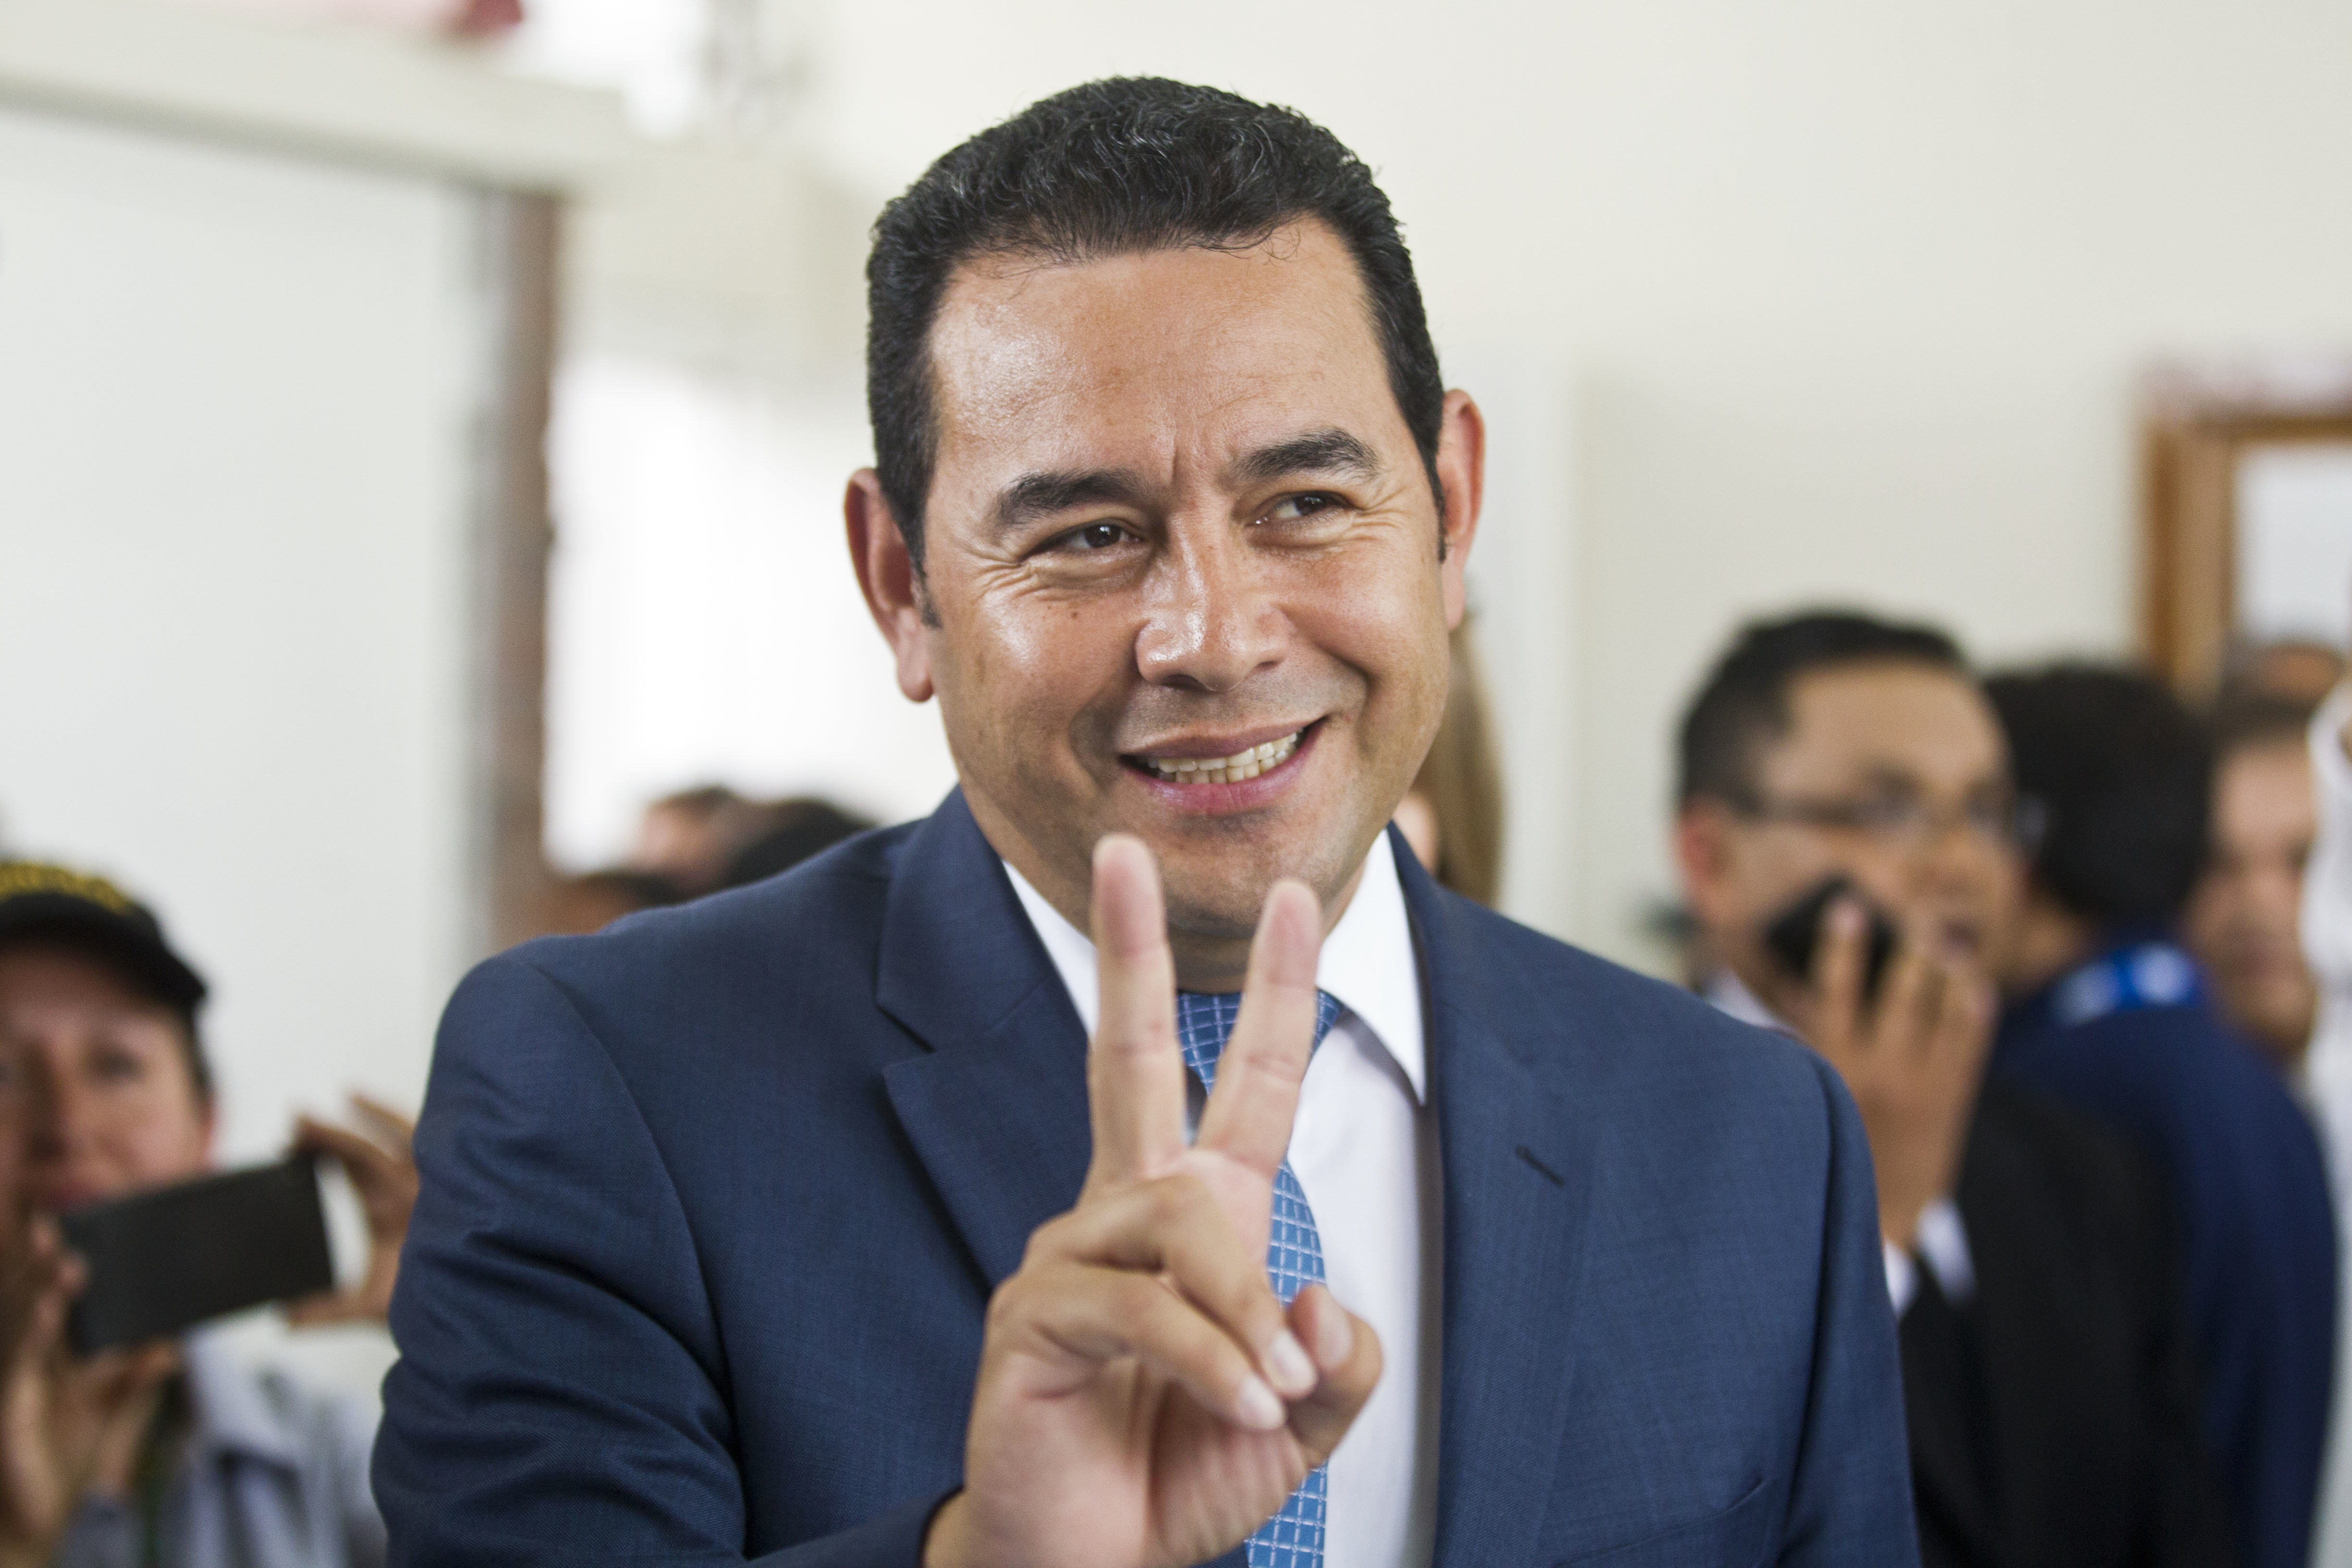 This Comedian Just Got Made President Of A Country UNILAD jimmy morales 174155